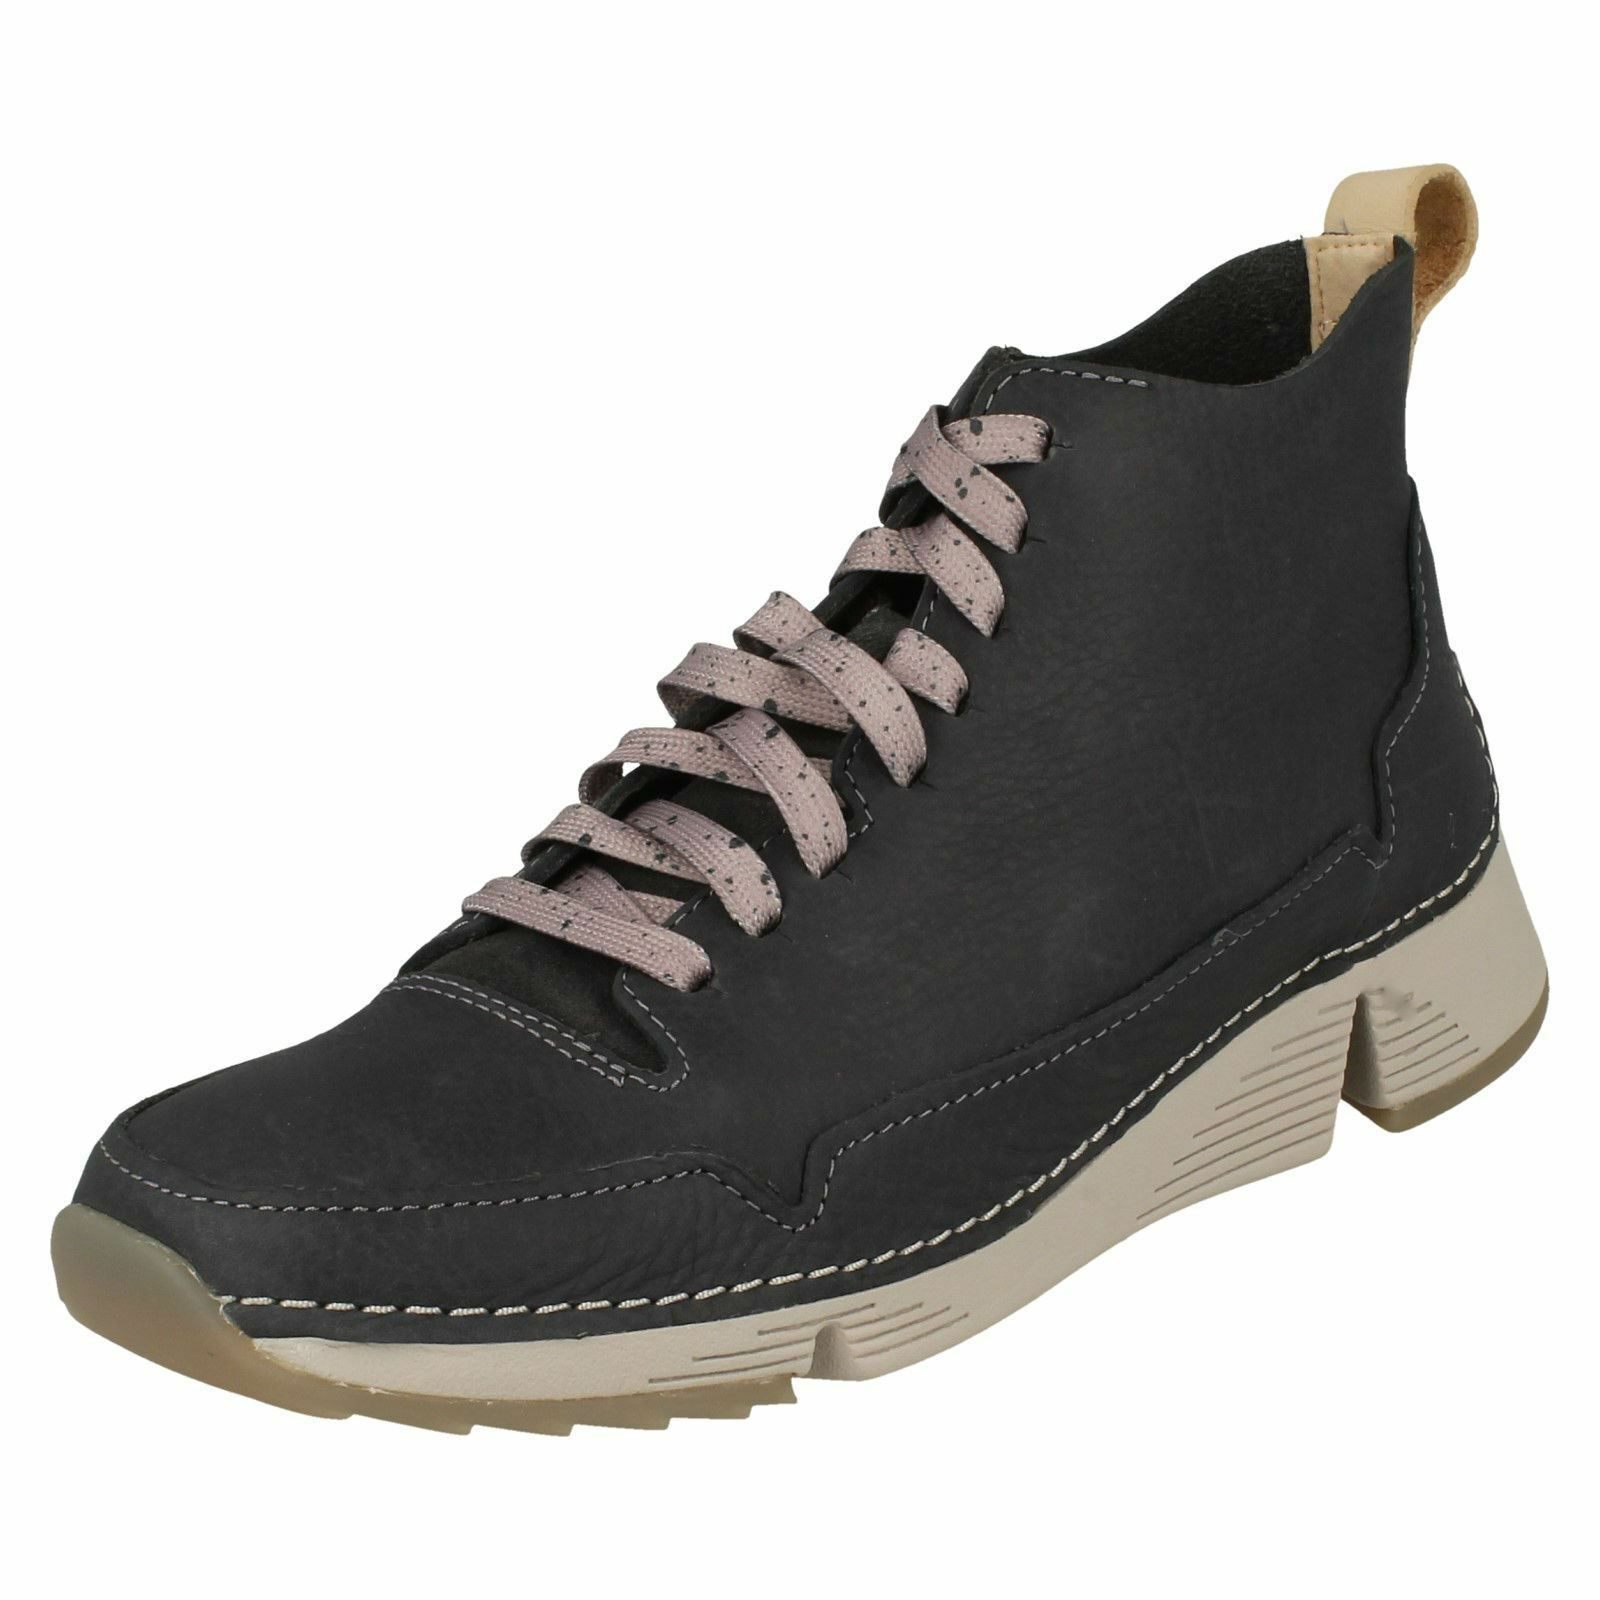 Clarks Ladies Lace Up Sporty Ankle Boot - Tri Free